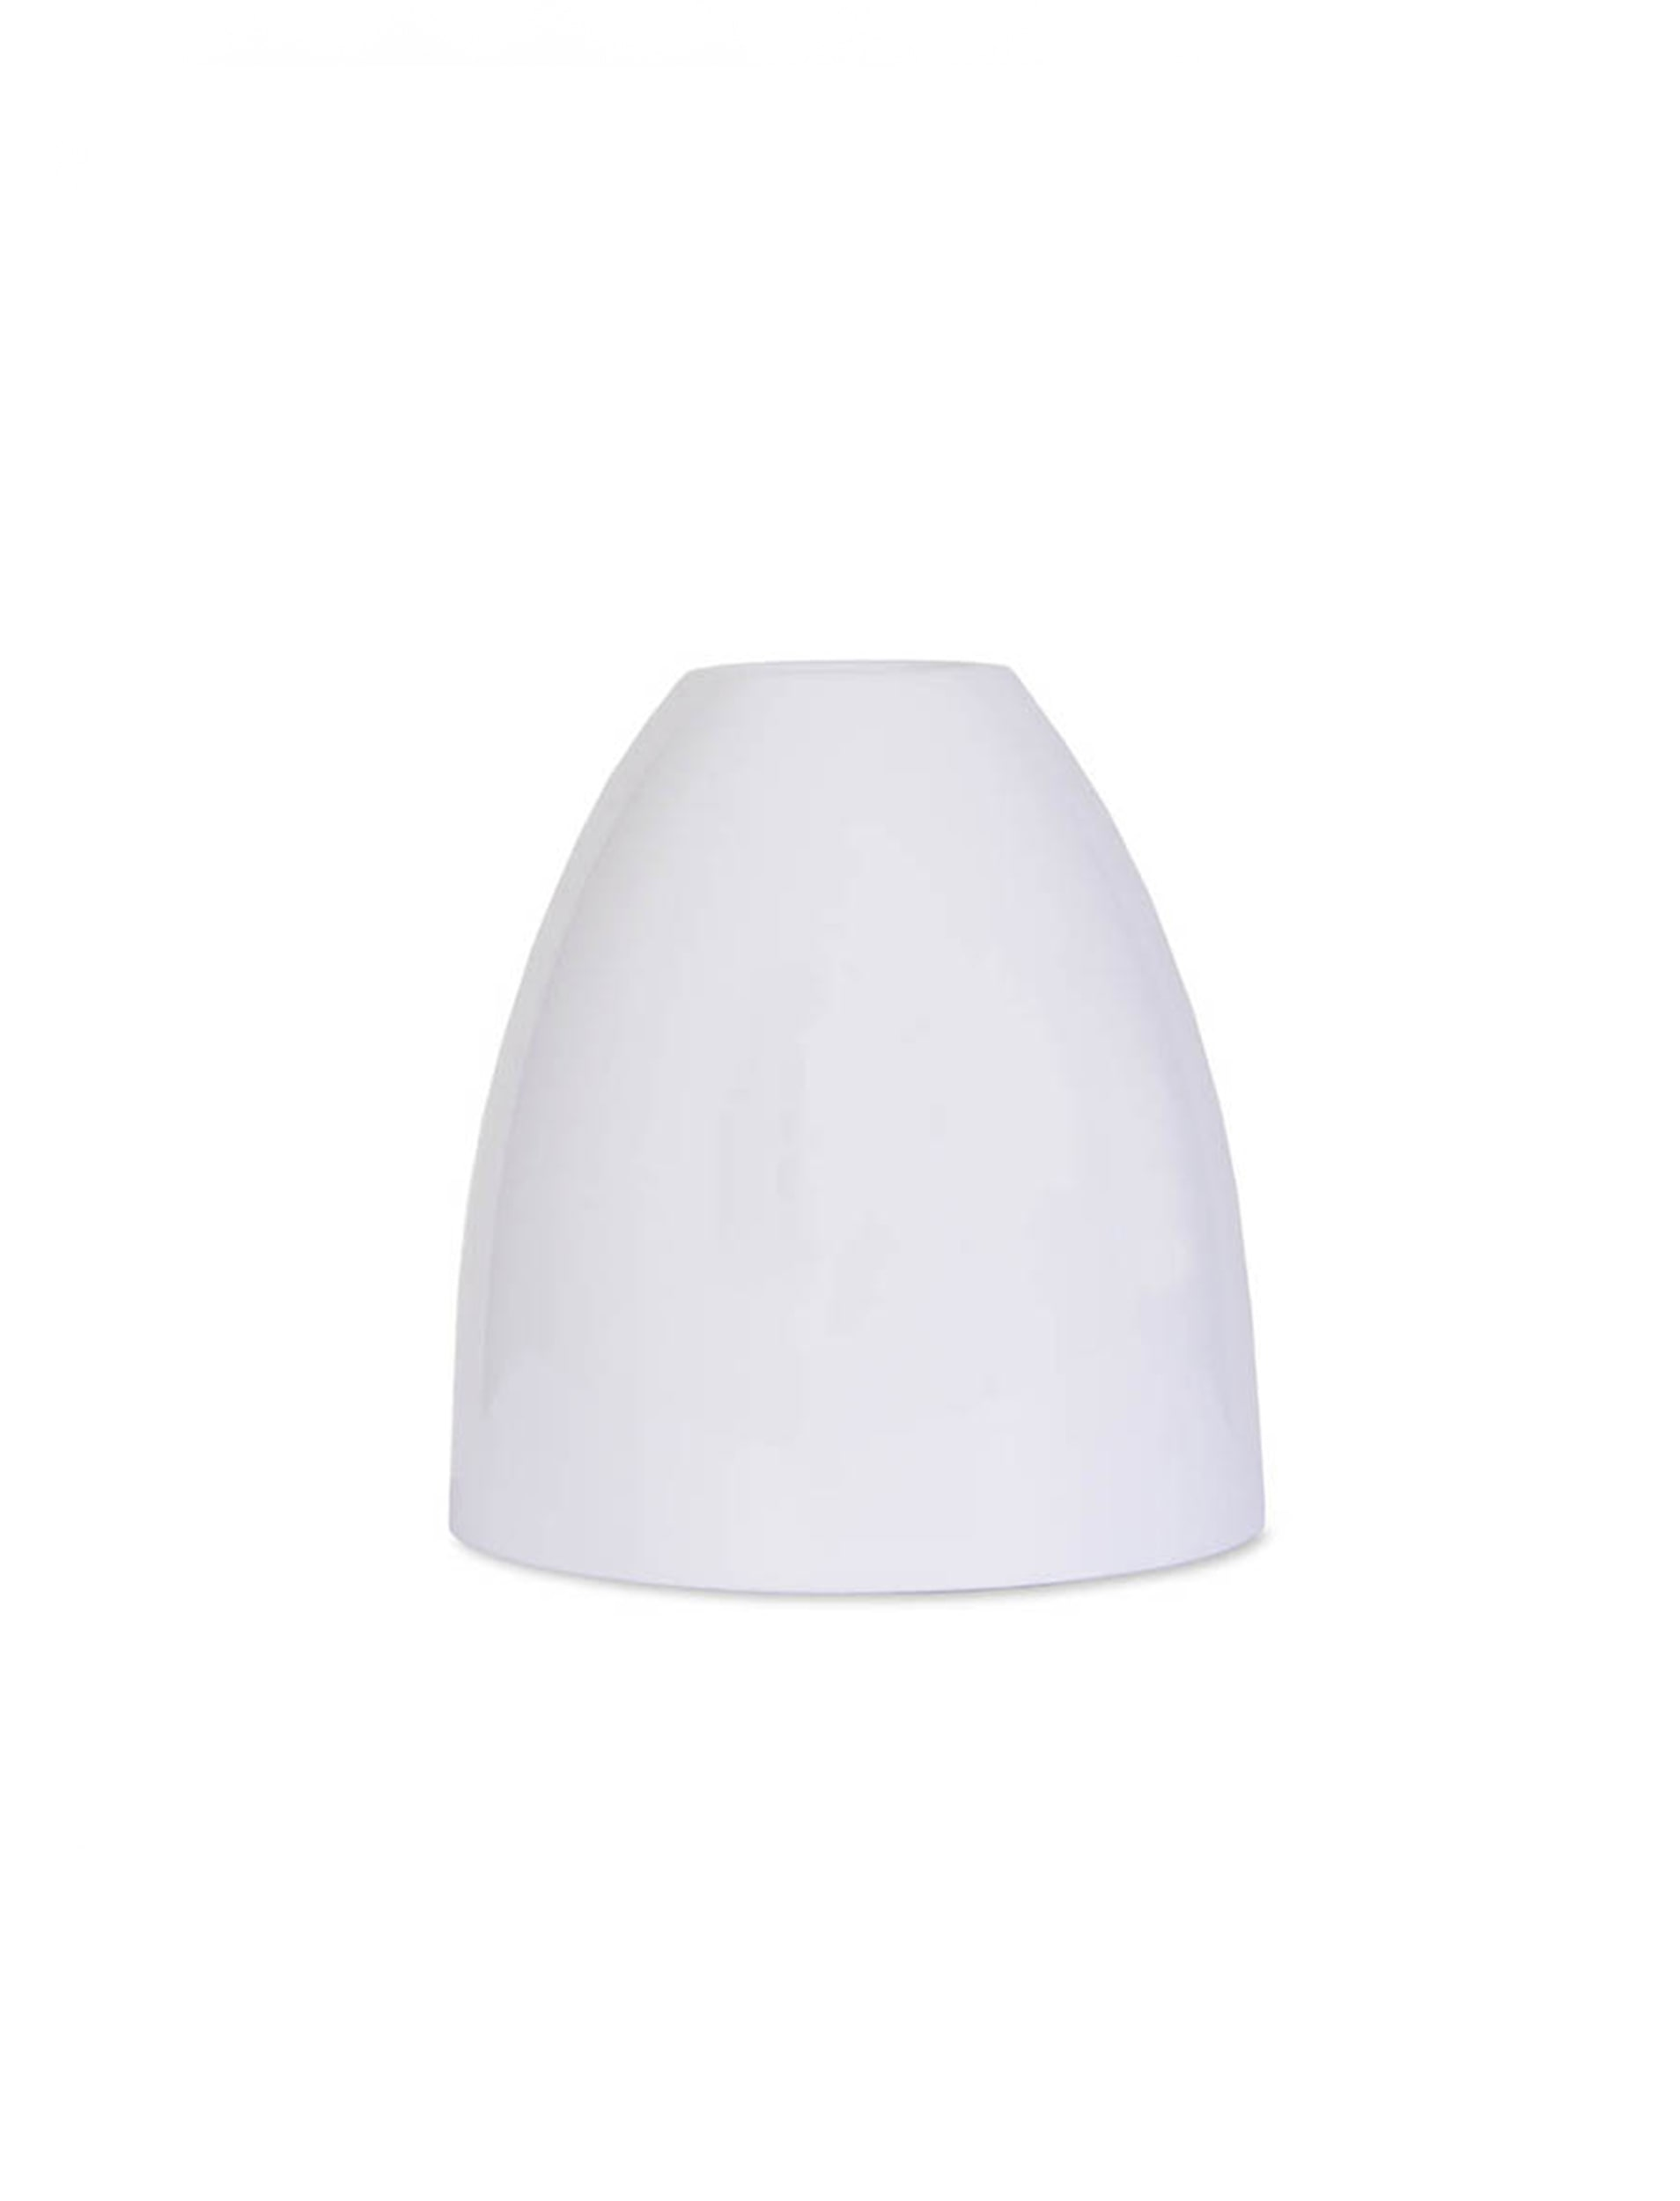 Replacement Shade for Shoreditch Table/Wall Light | Garden Trading